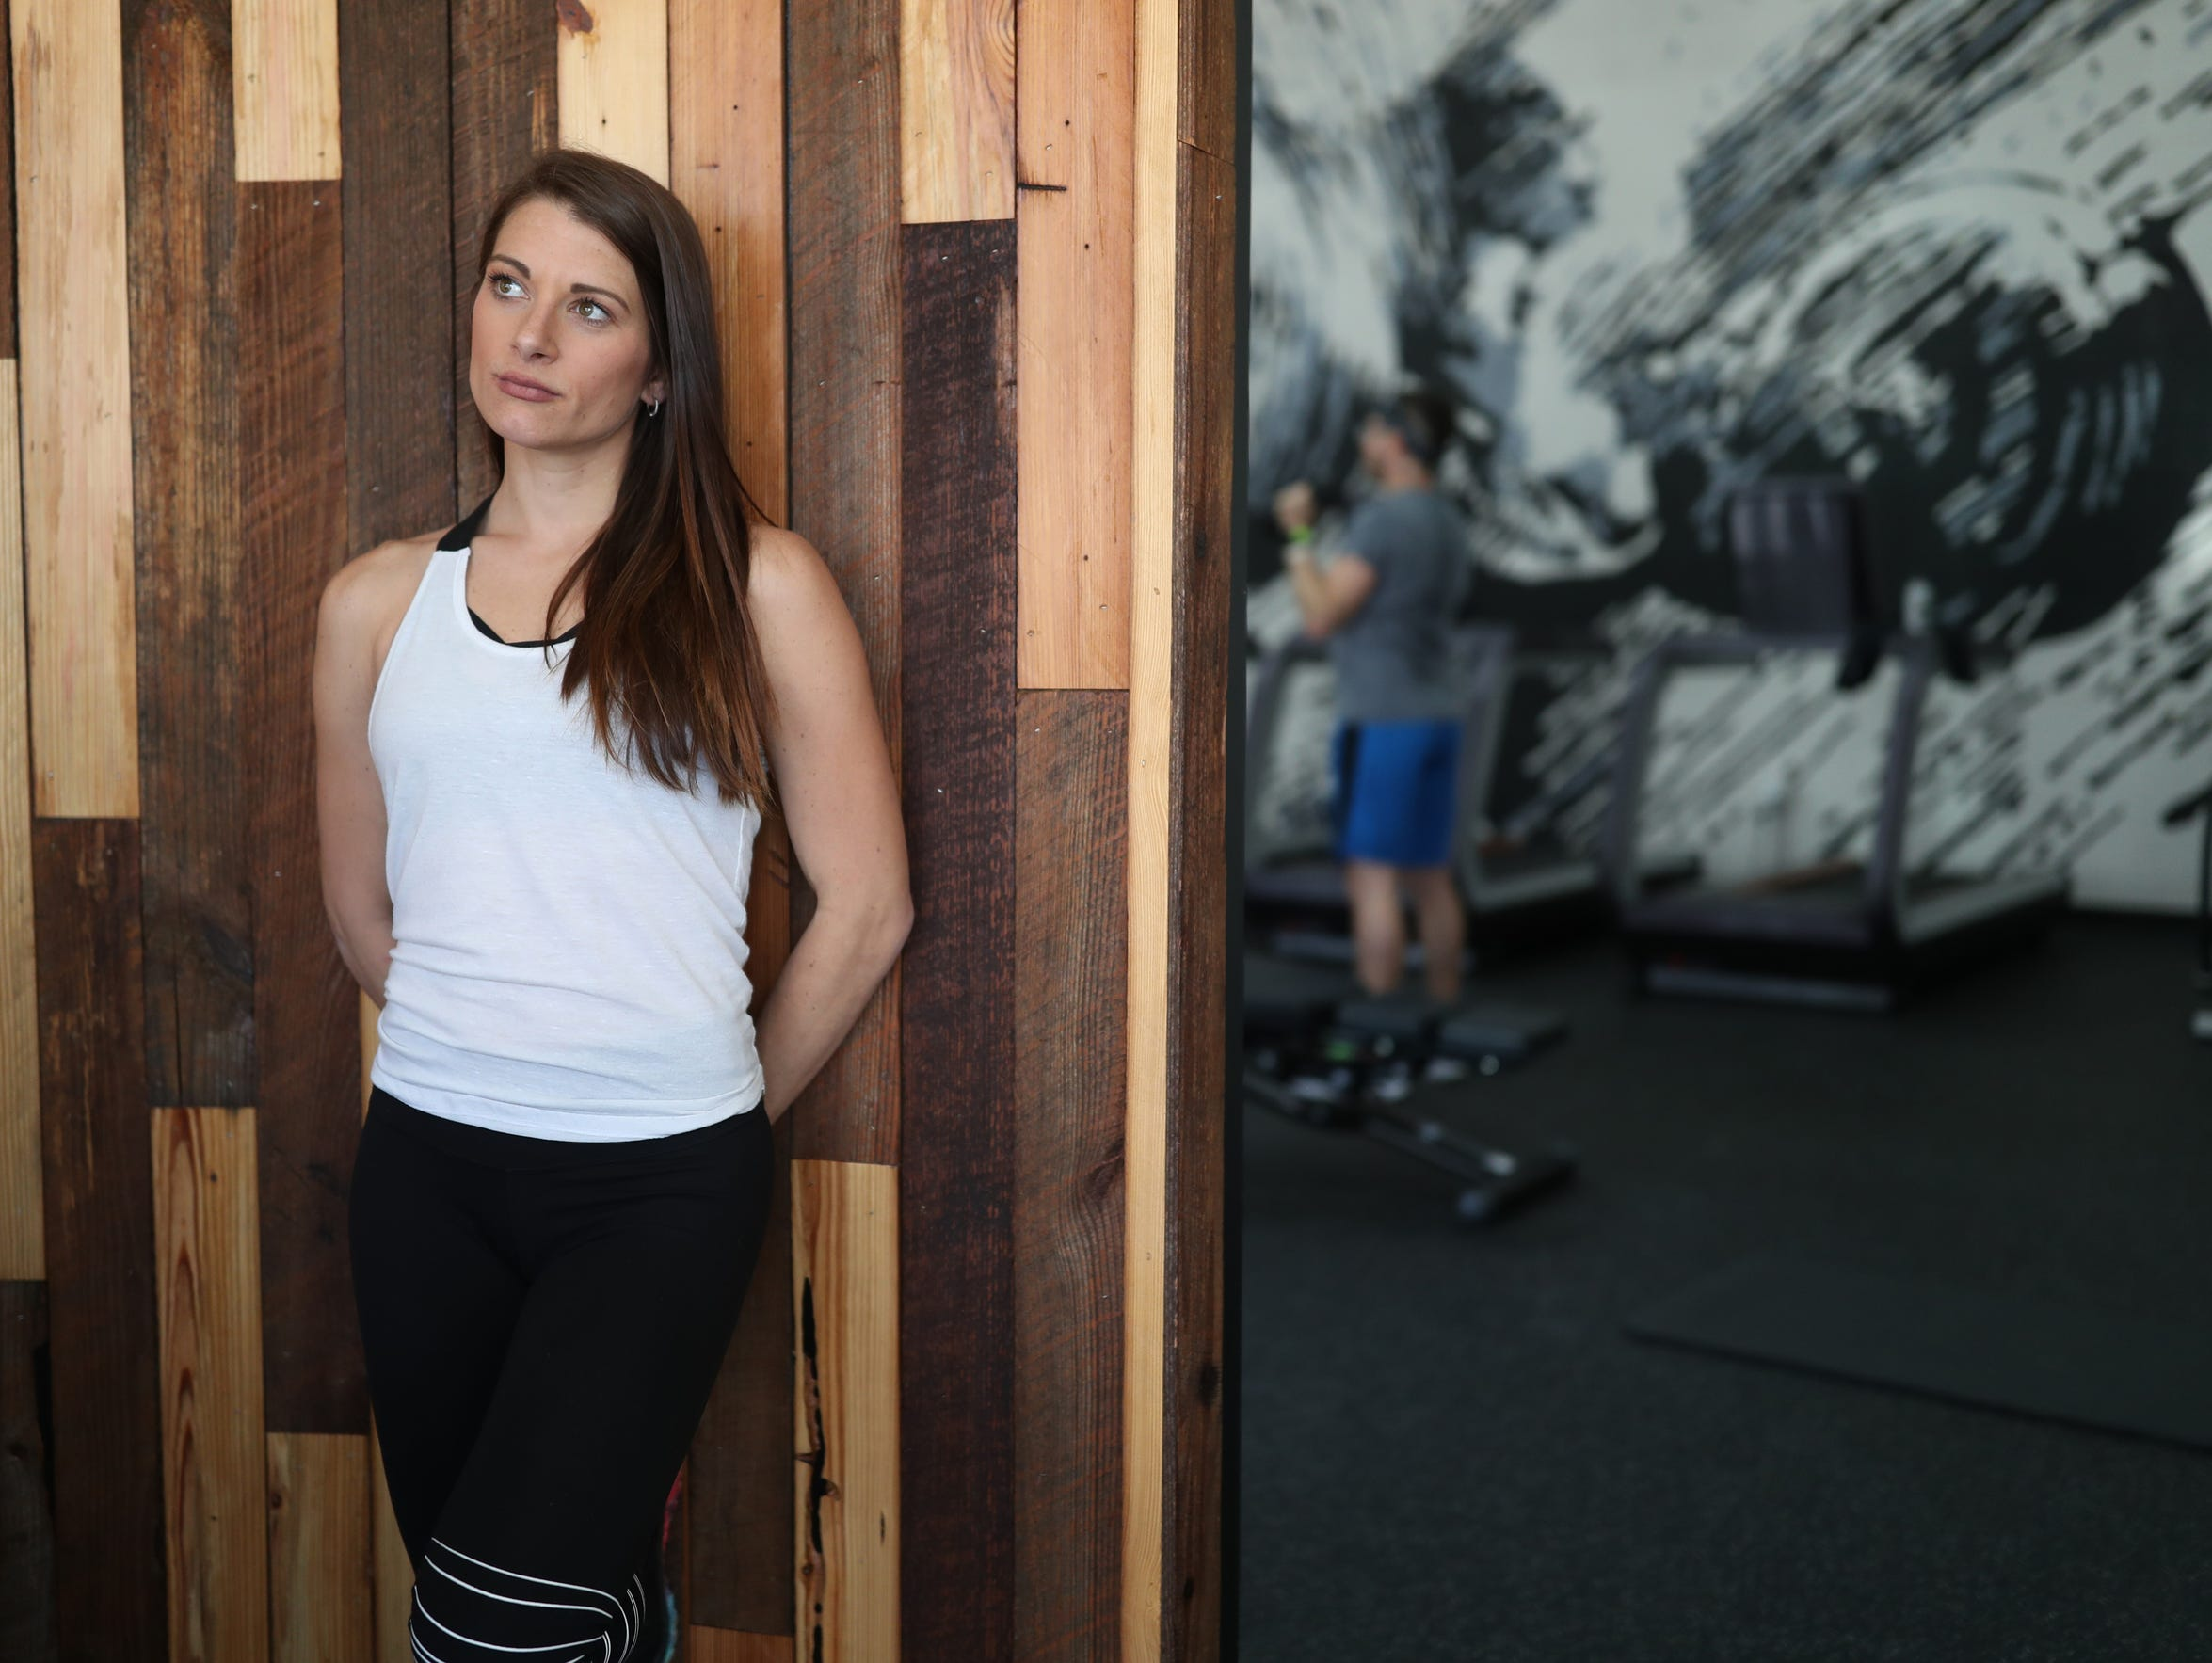 Jackie Chelly, who owns the franchise fitness center